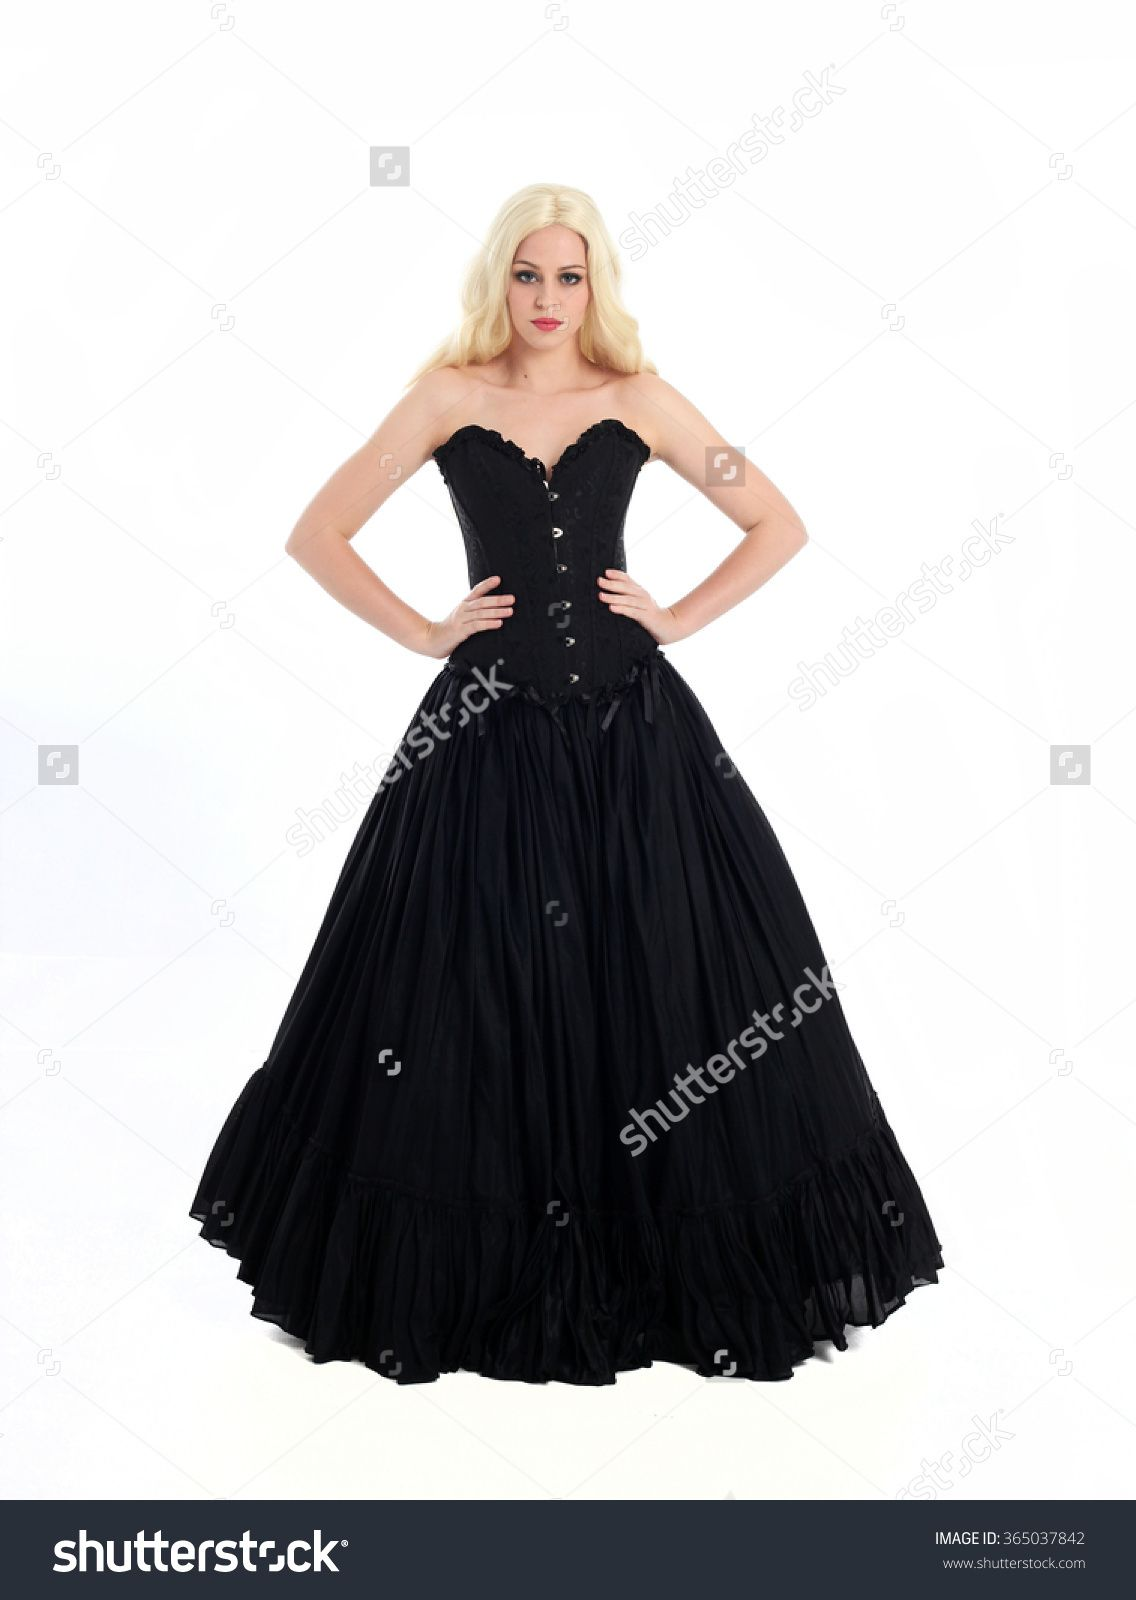 Blonde Haired Woman Wearing Long Black Gothic Gown With Corset. Standing Pose, Isolated Against White Background. Stock Photo 365037842 : Shutterstock